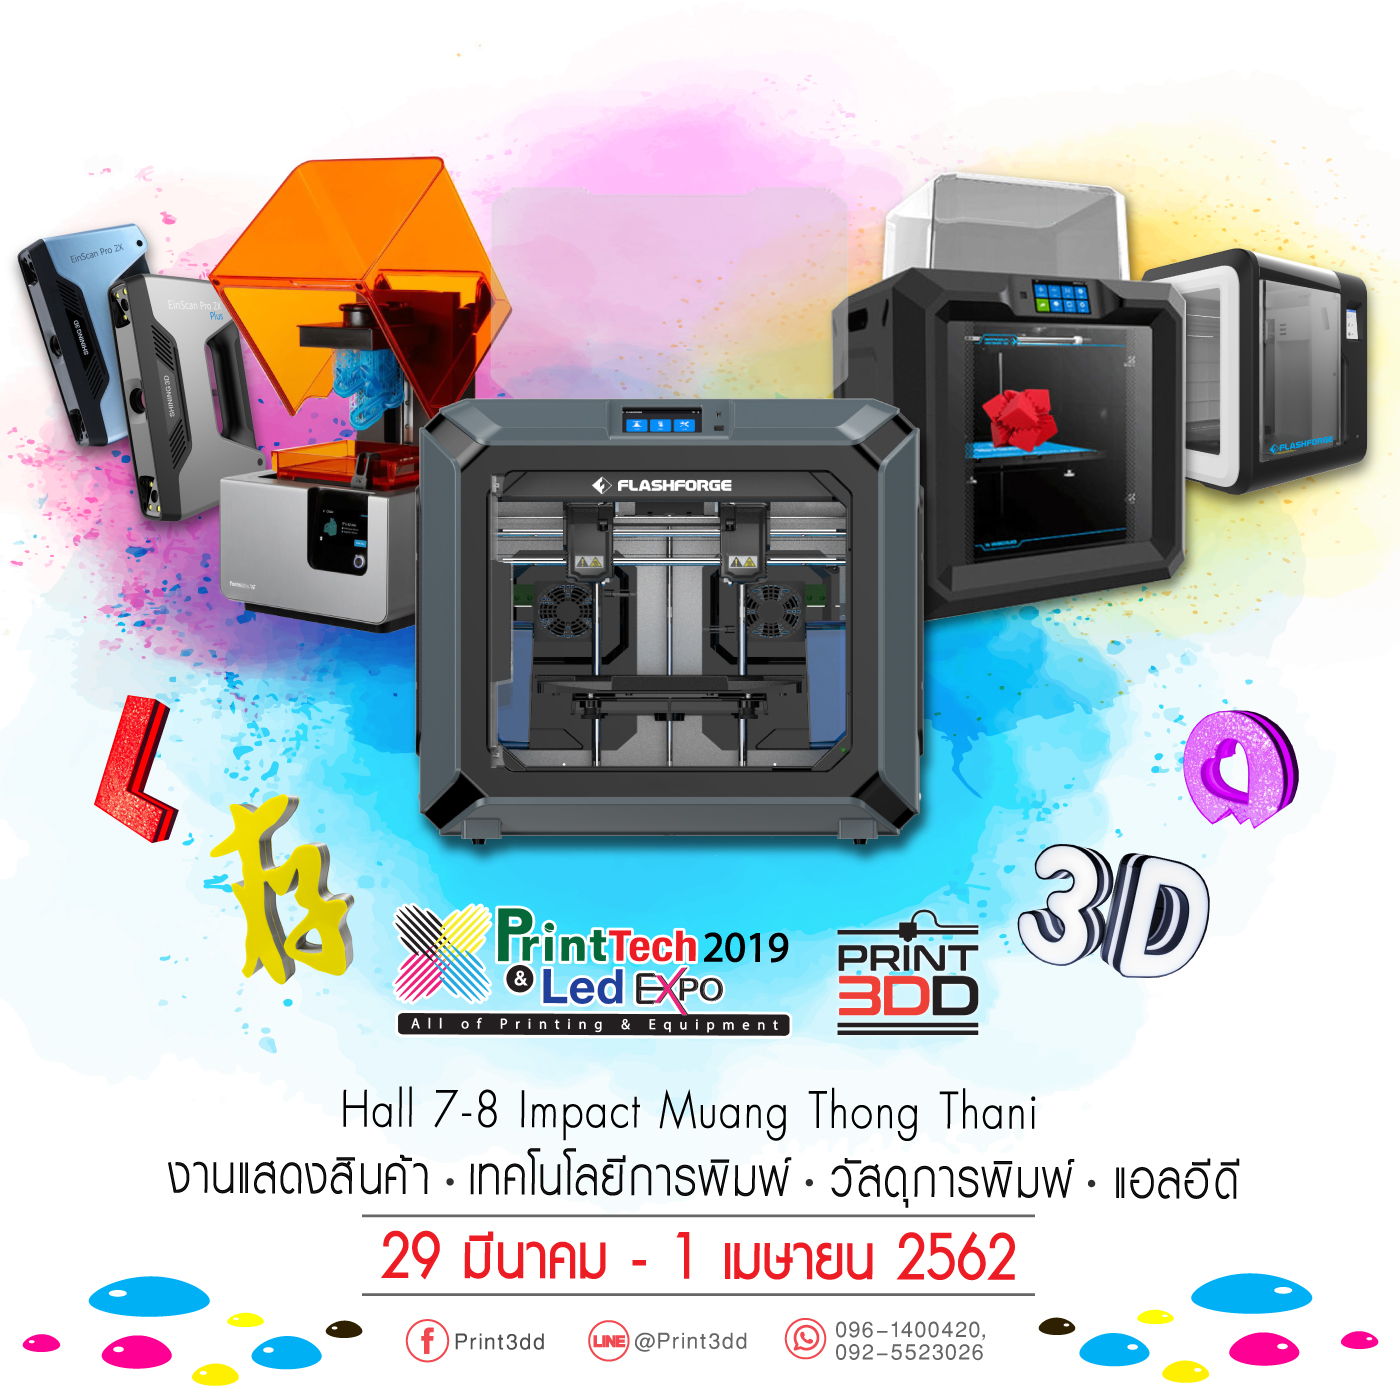 Printtech 2019 & LED Expo Impact Muang Thong Thani Hall 11-12 (Hall 7-8 เดิม)